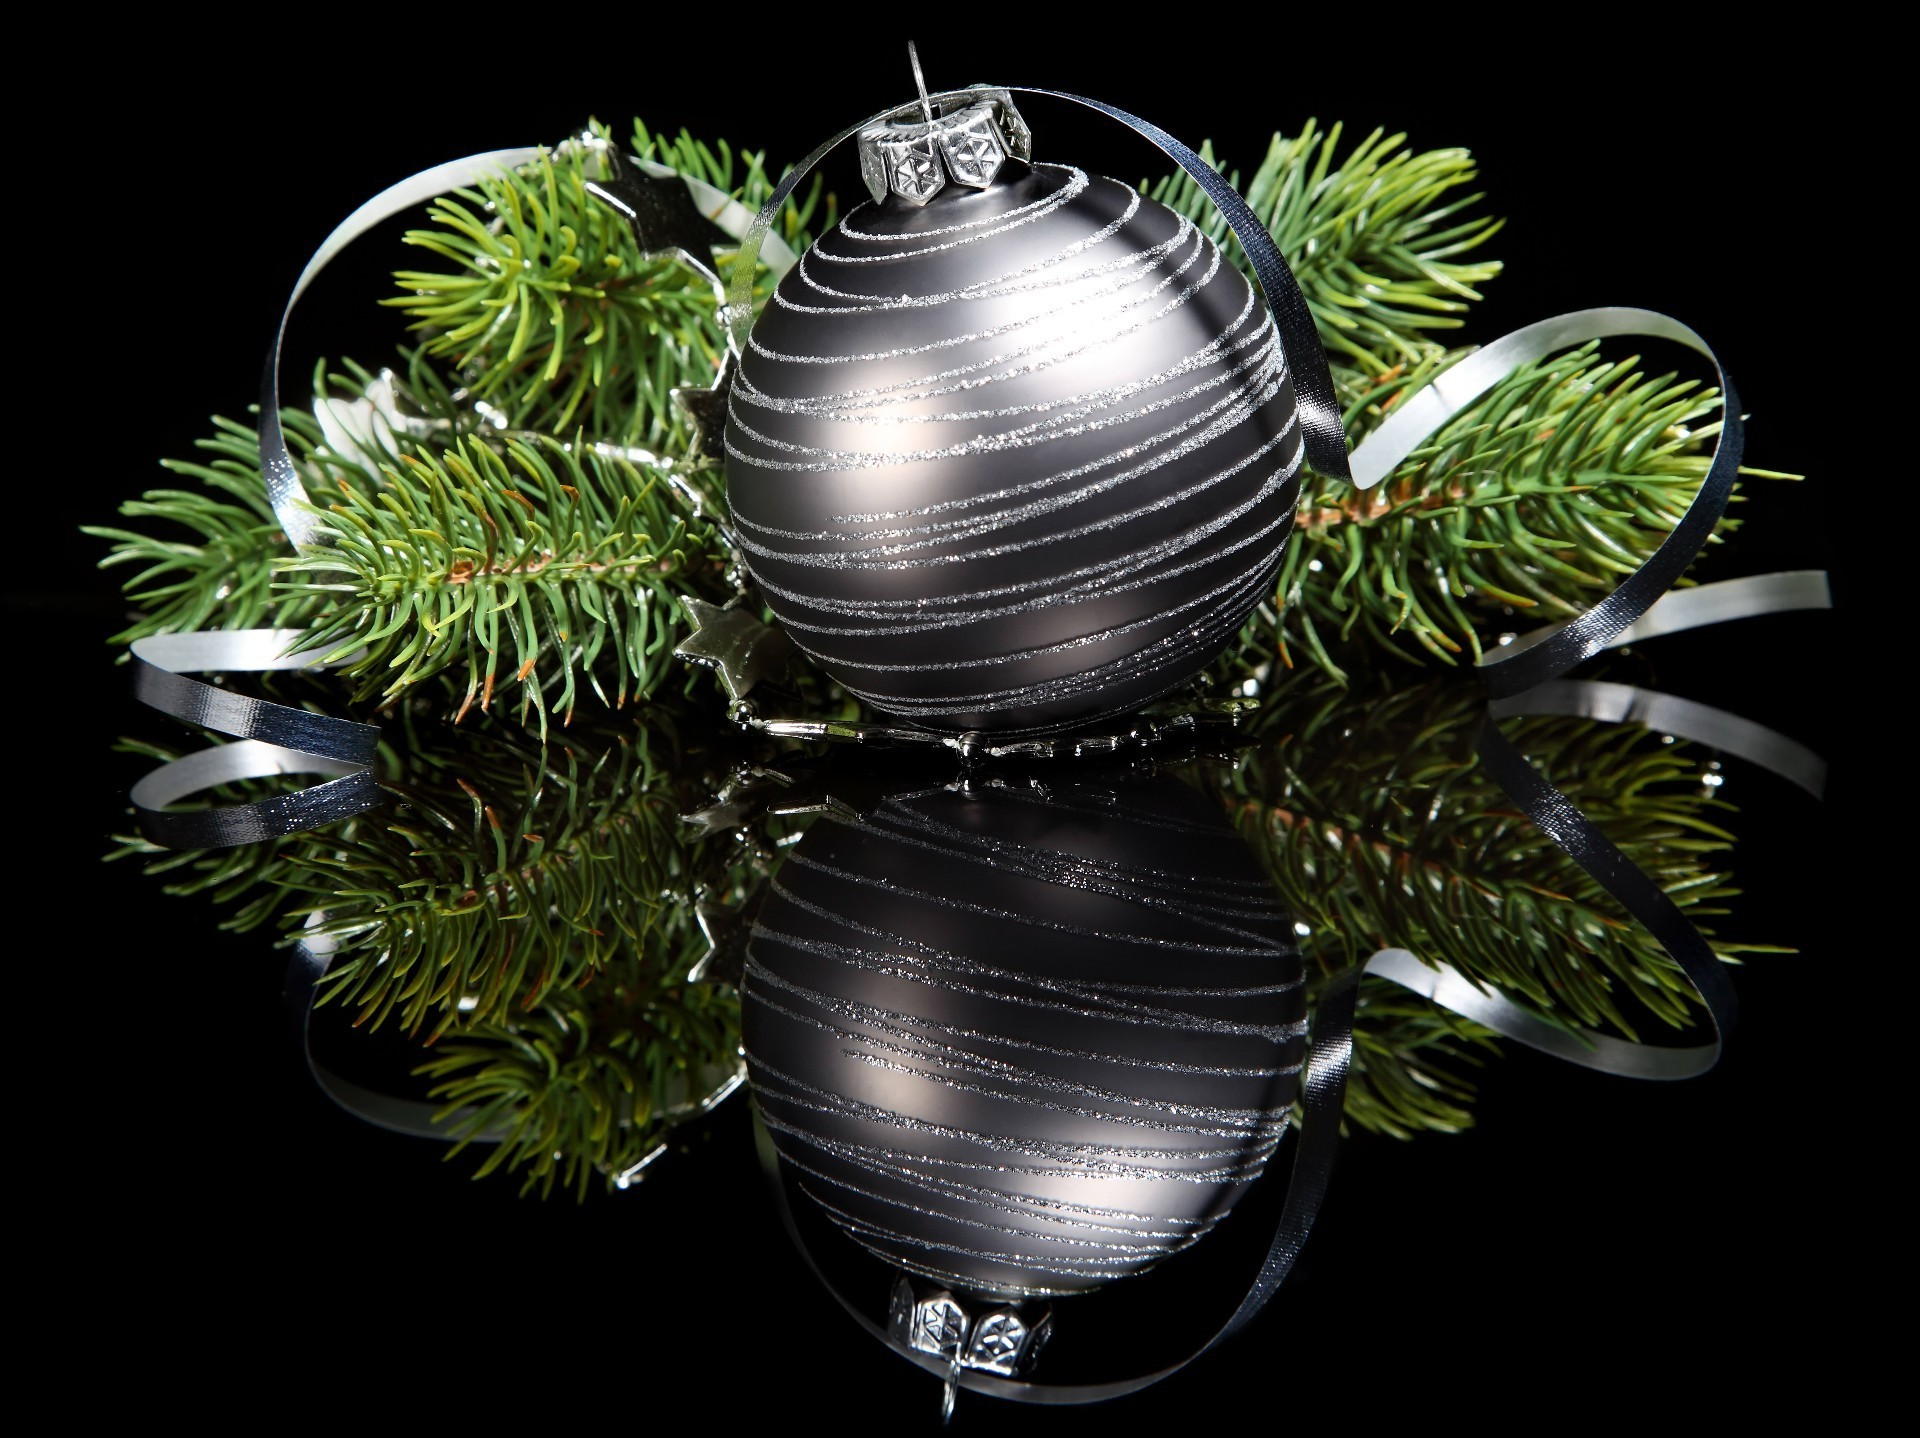 Silver Christmas ball with green branches on a black mirror